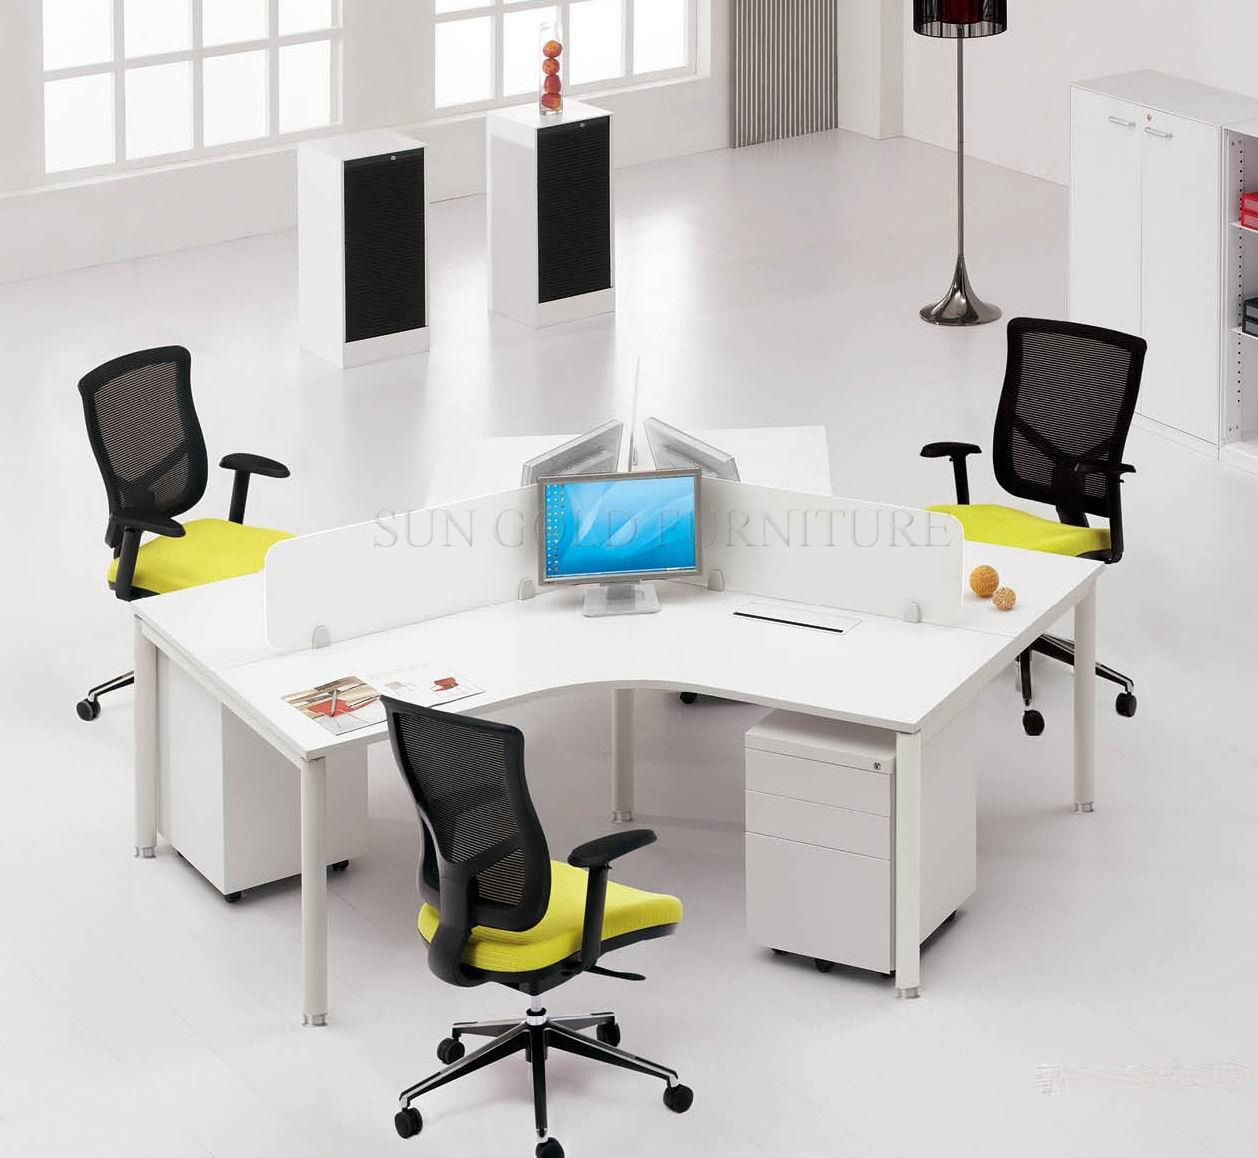 3 Person 120 Degree Cluster Workstation Delivery Install To